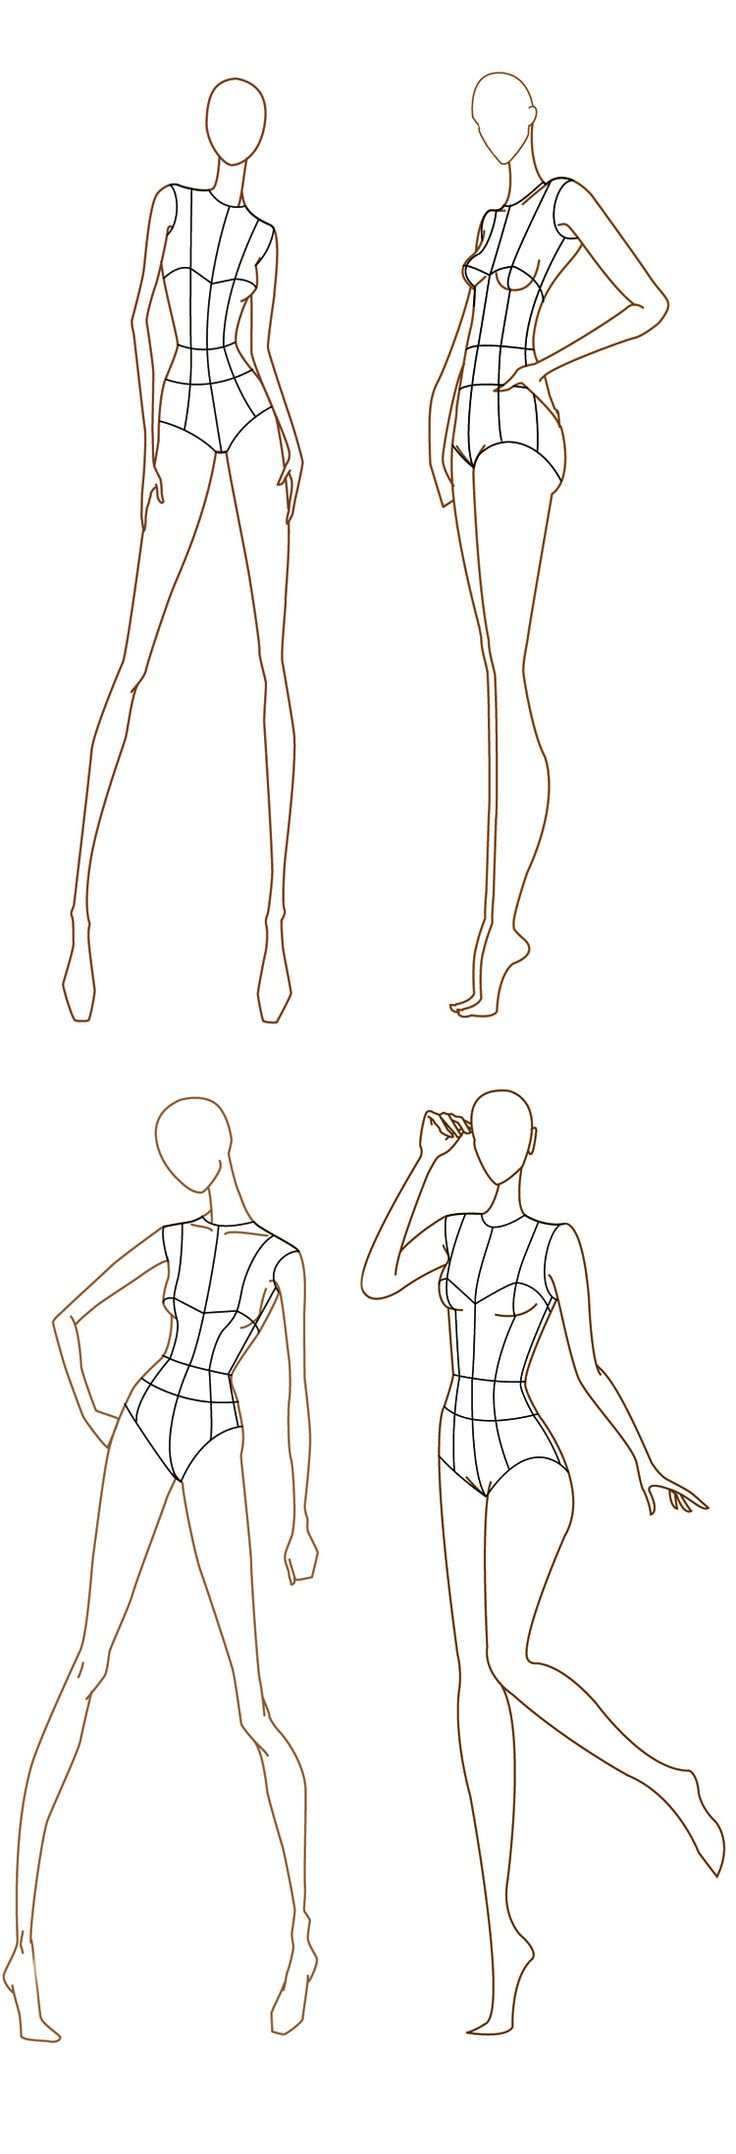 Clothing Design Templates Free Free download Fashion design